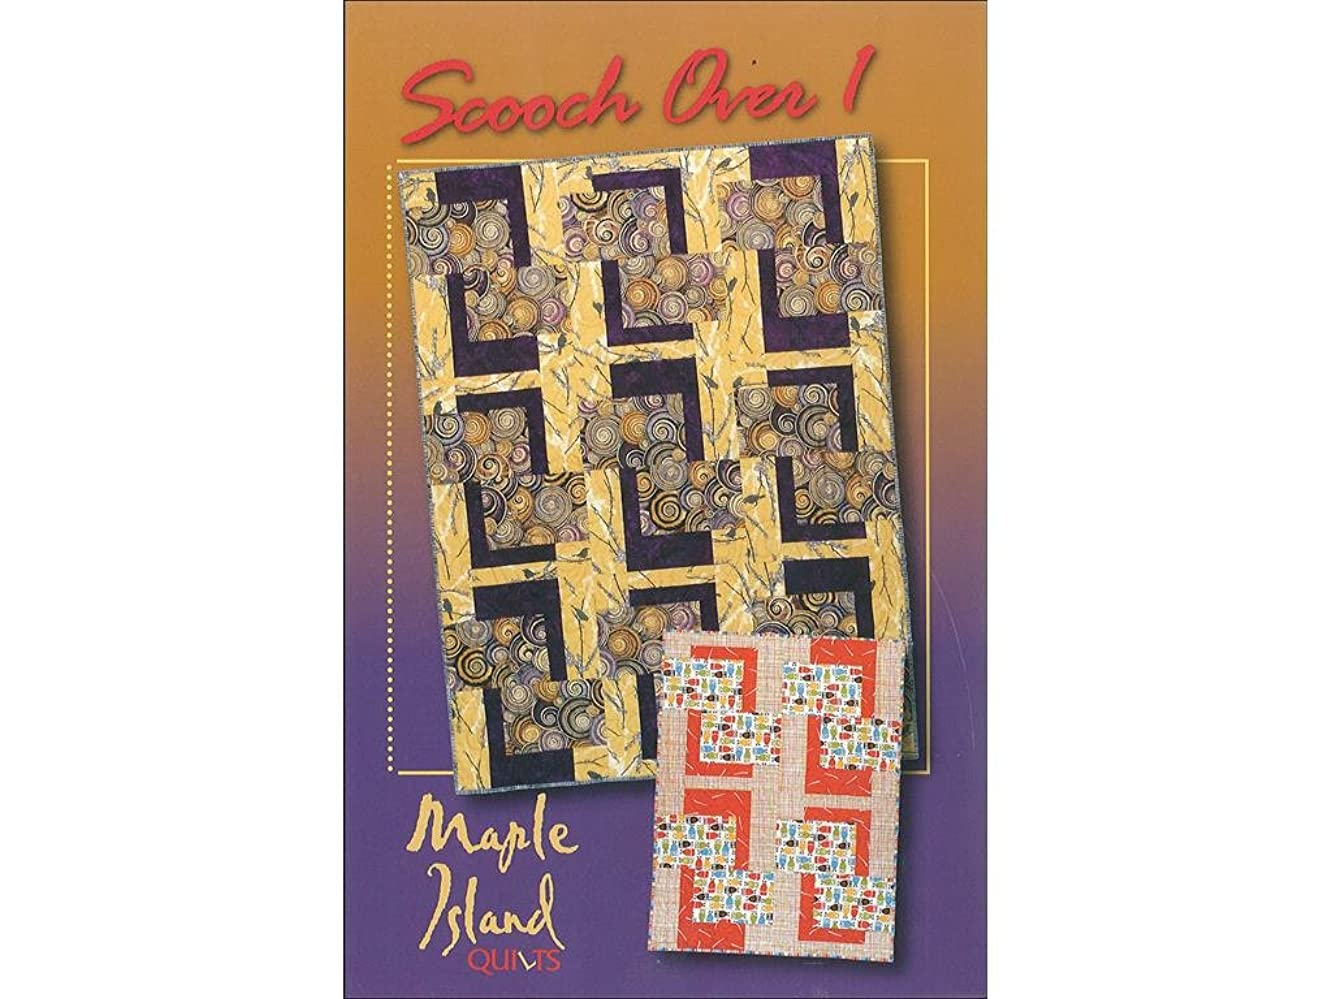 Maple Island Quilts Scooch Over 1 Ptrn